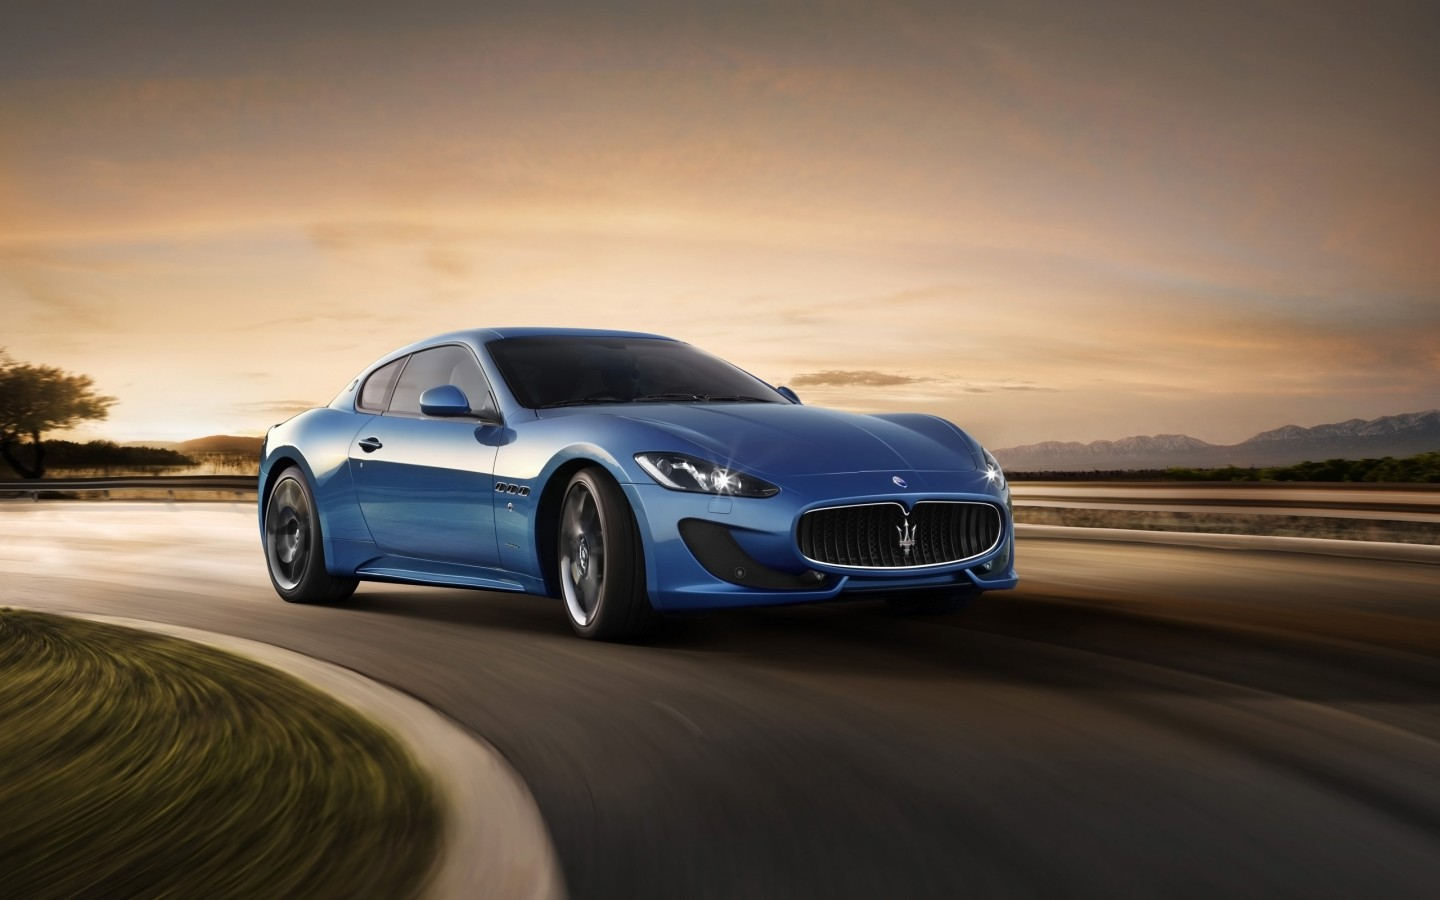 gran turismo sport wallpapers: Maserati GranTurismo Sport 2014 Wallpaper